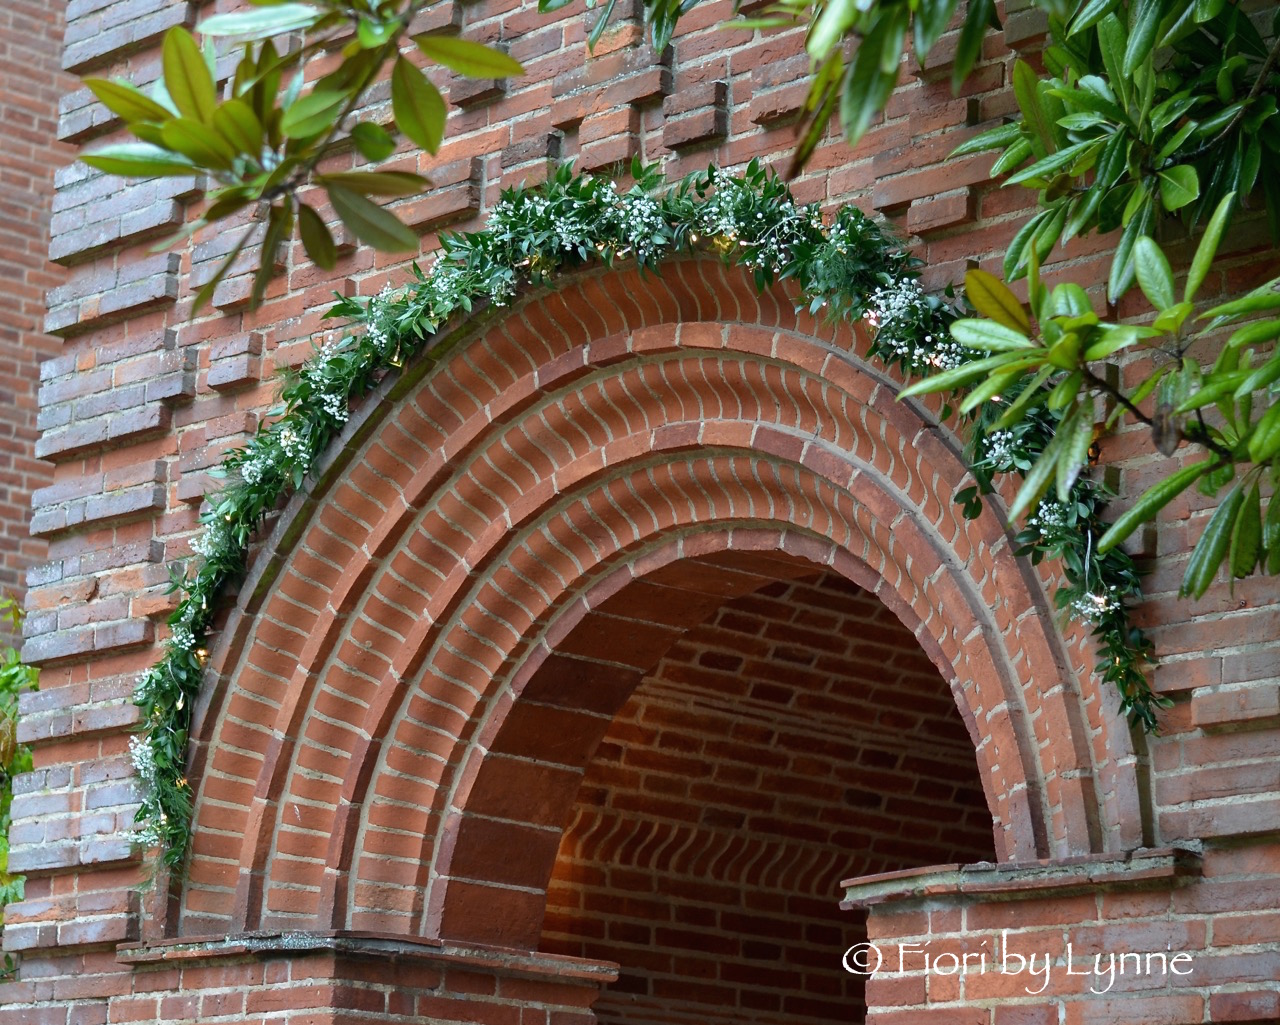 floral-arch-foliage-fairylightsgypnewplace.jpg